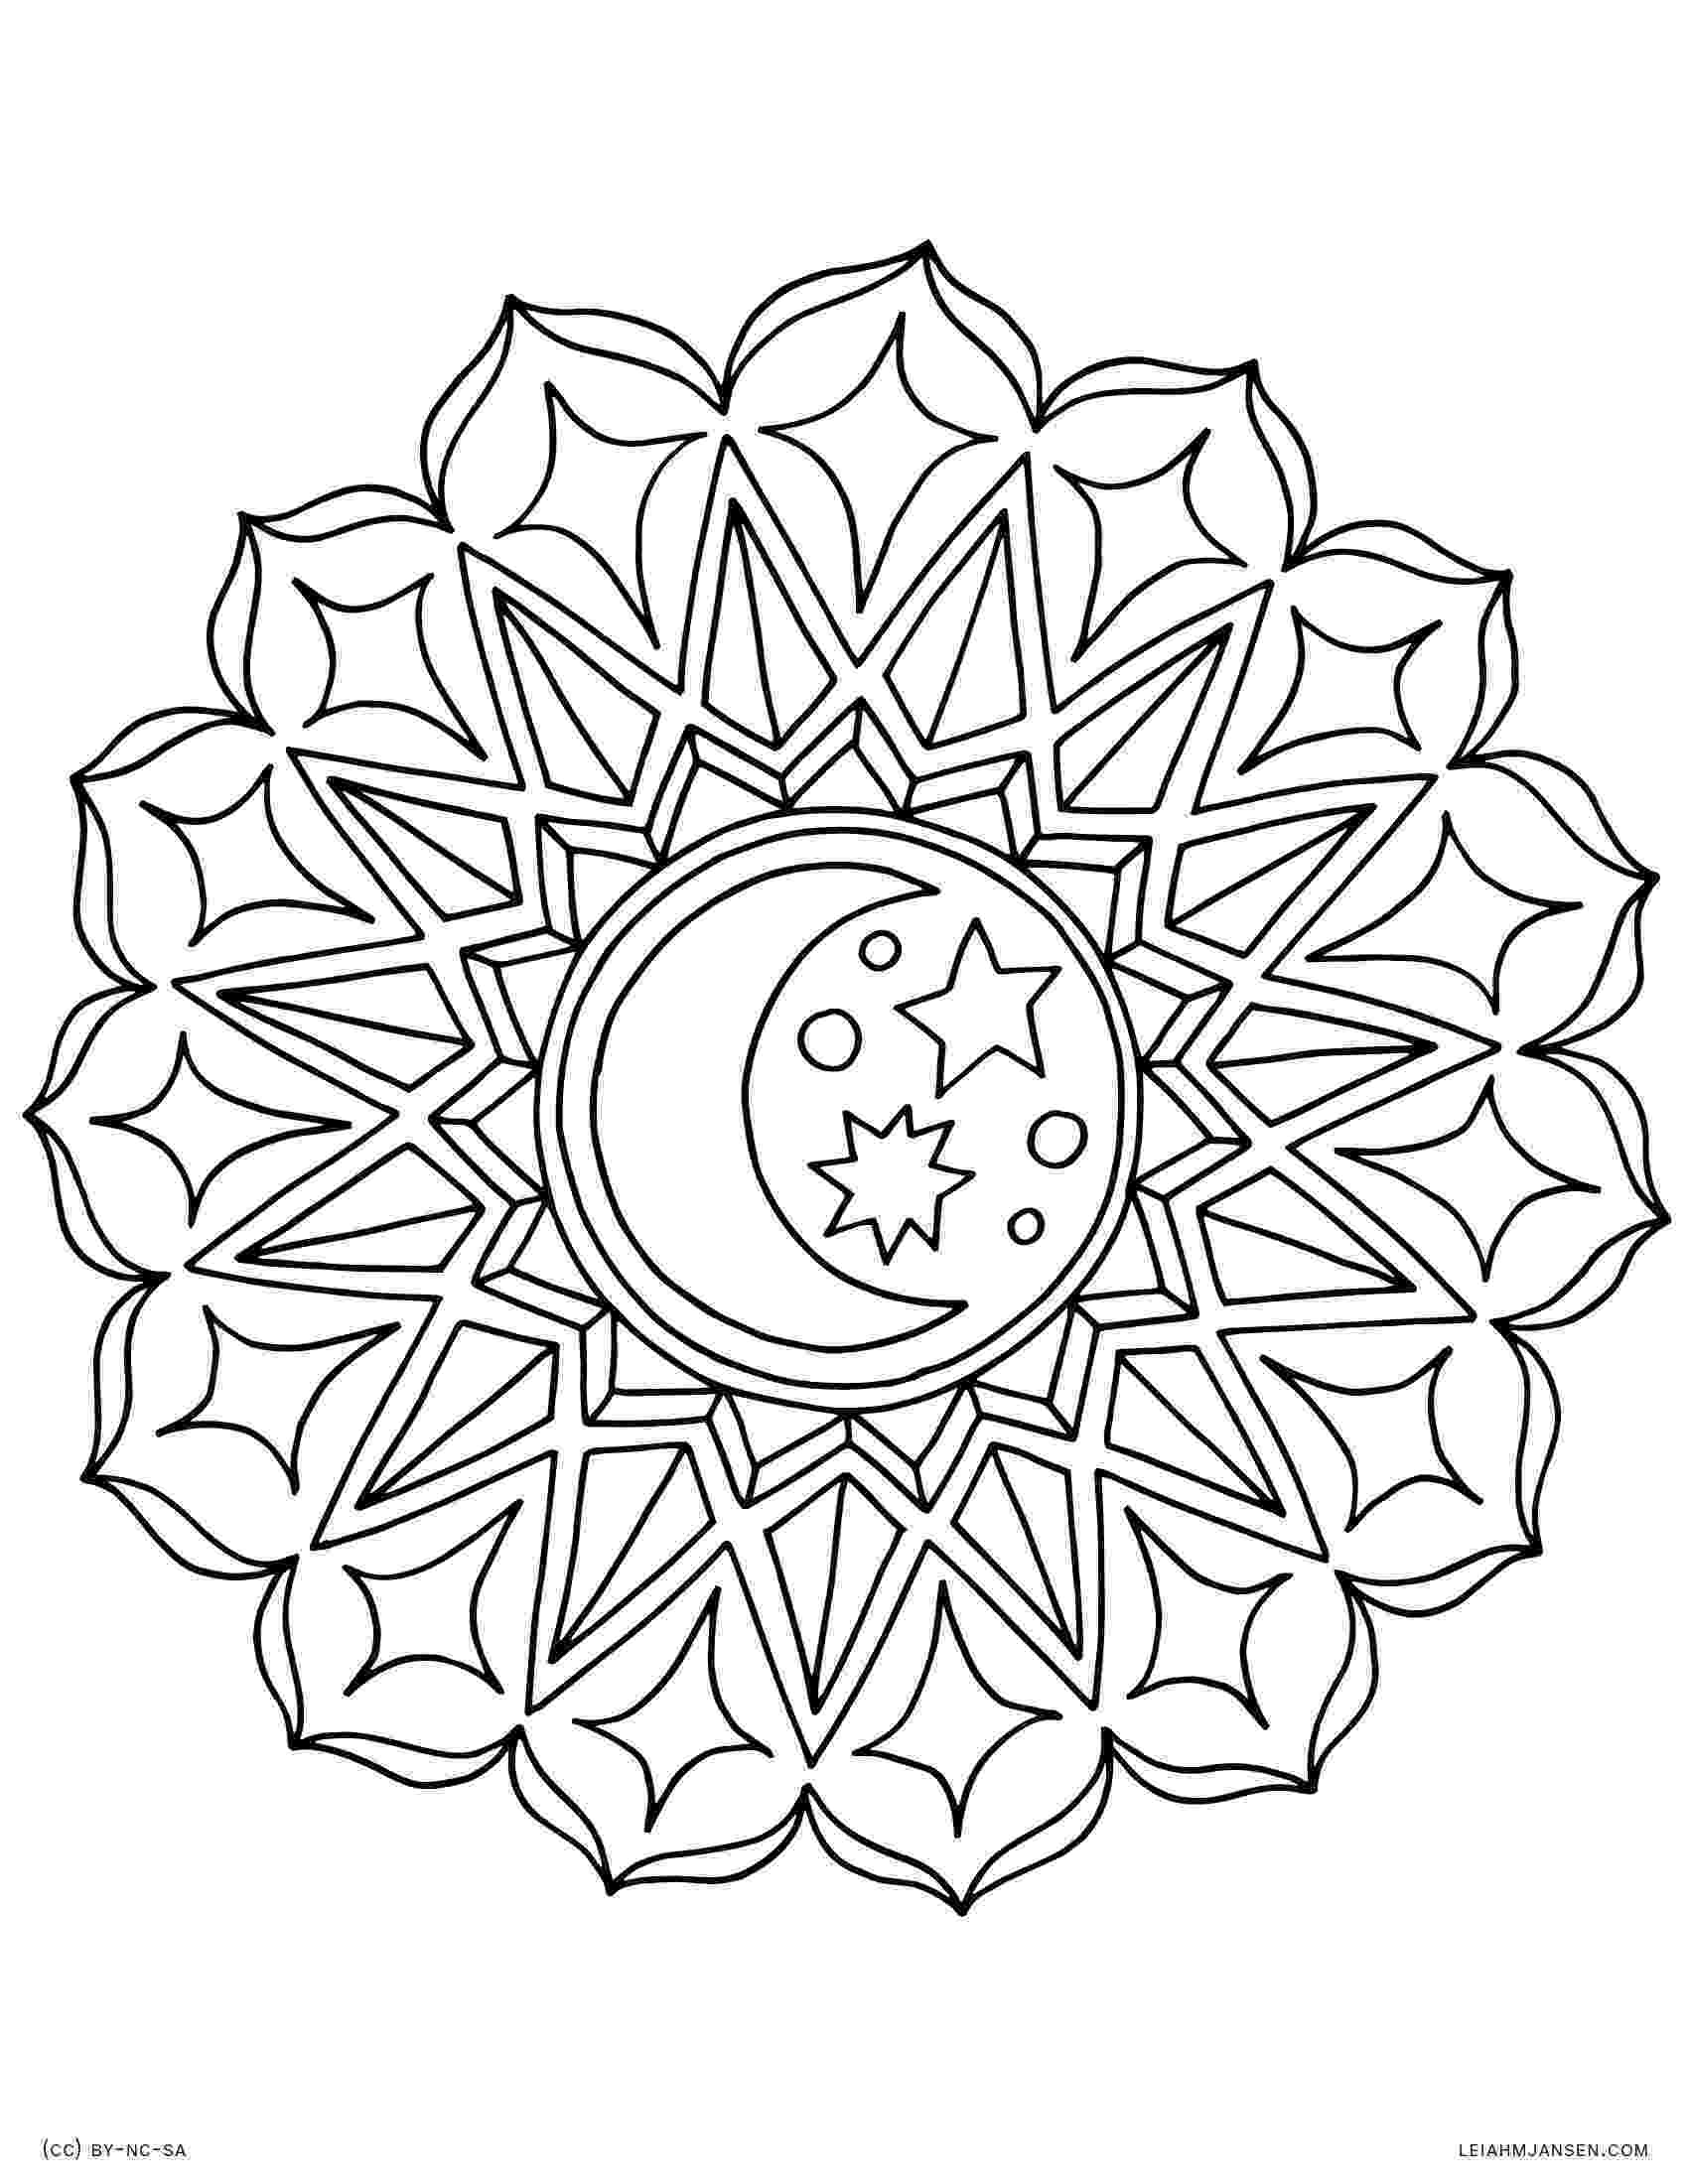 coloring mandalas for adults opal palace mandala coloring page favecraftscom adults coloring mandalas for